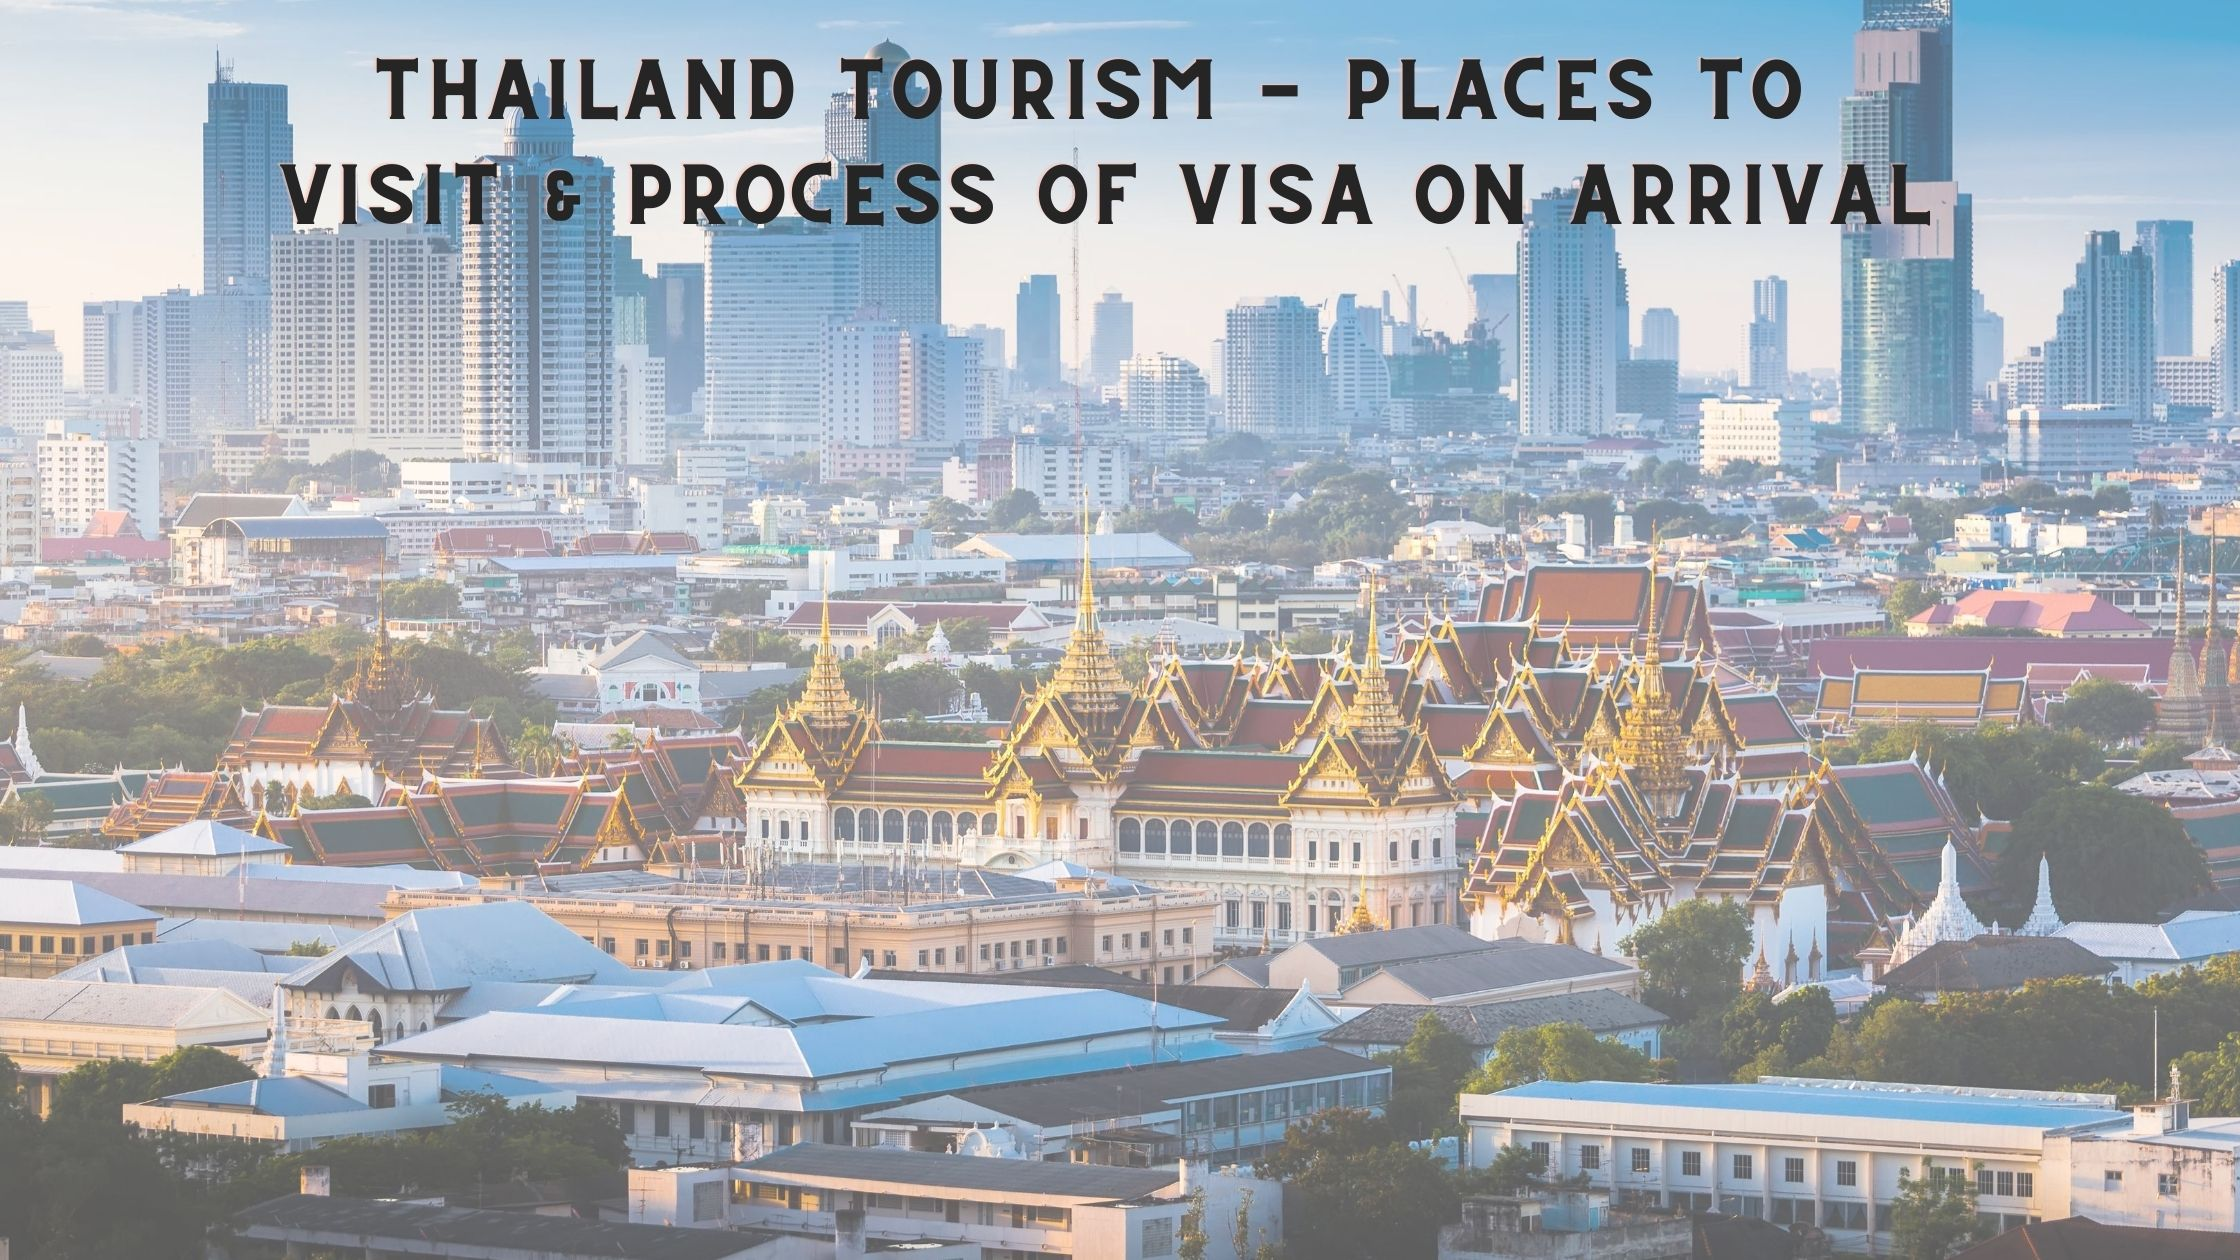 Thailand Tourism - Fly For Holidays